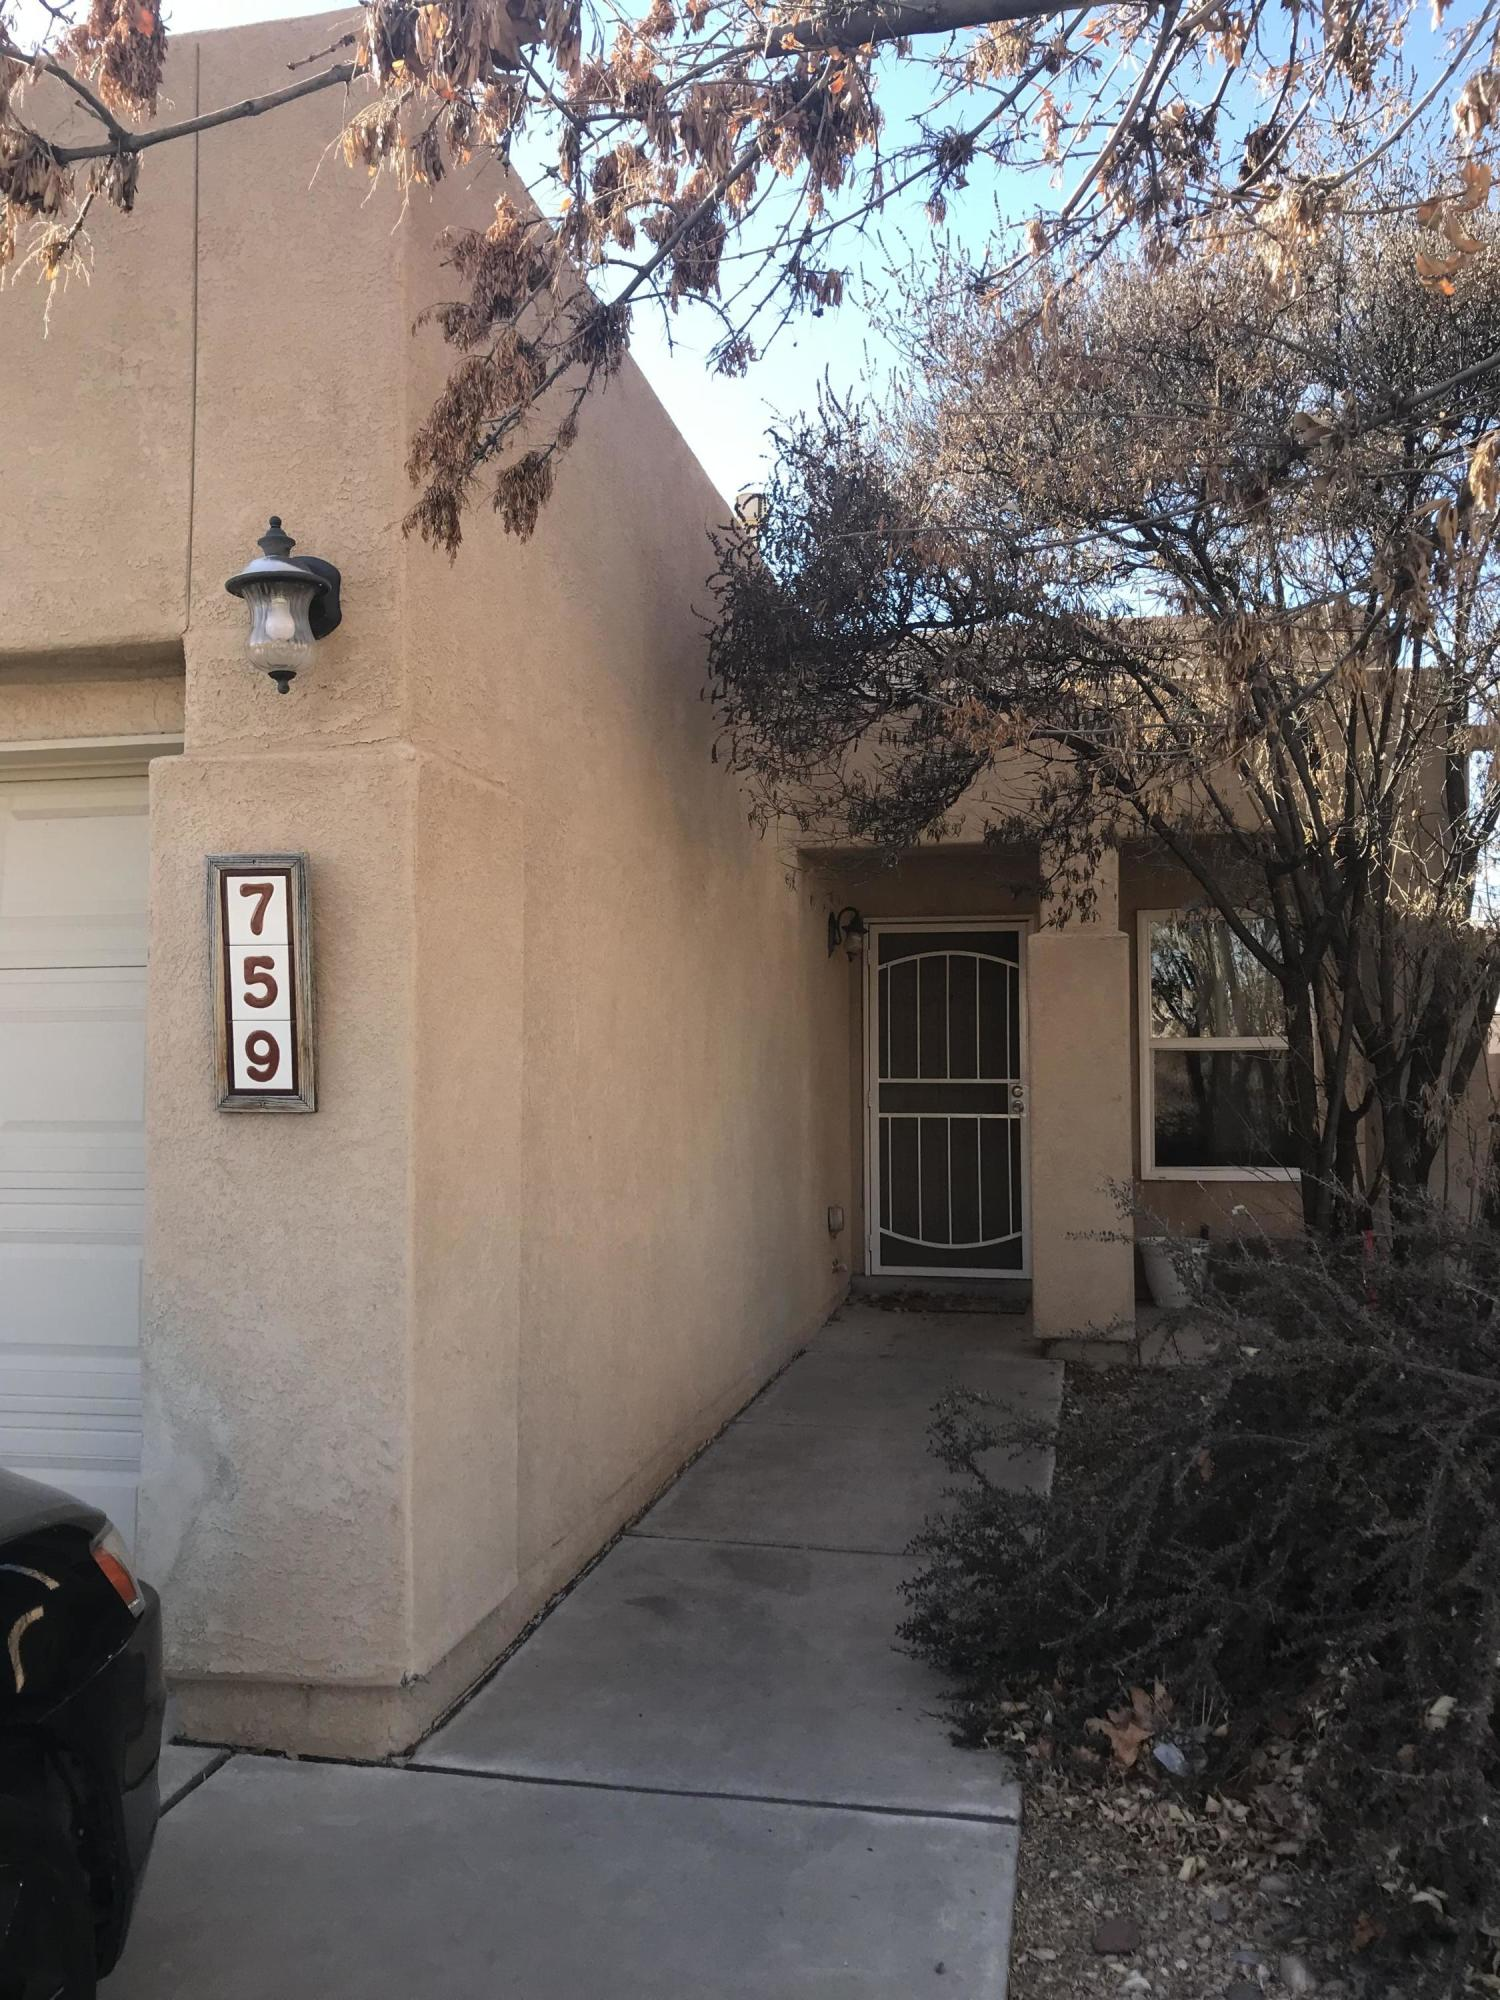 Clean 2 bedroom ready to go.Quiet street, easy access to freeway.Walking distance  to park/dog park schools etc ..Great Investment property show and sell!